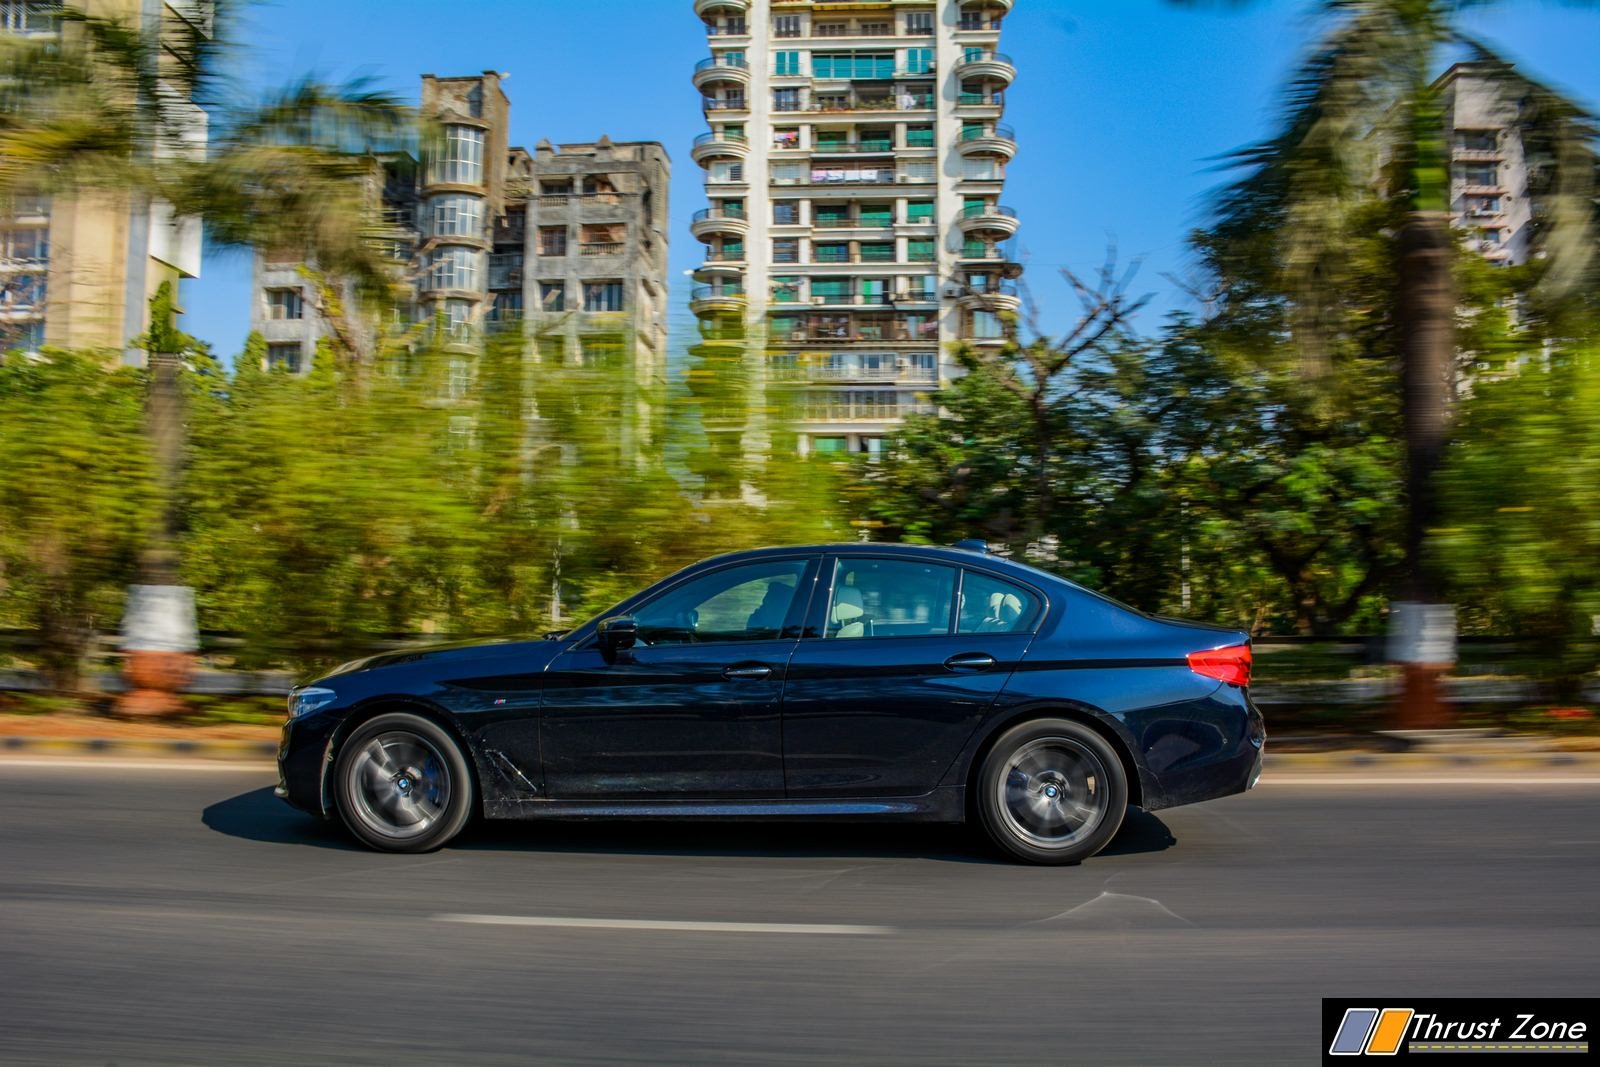 http://www.thrustzone.com/wp-content/uploads/2019/01/2018-BMW-530d-India-Review-10.jpg